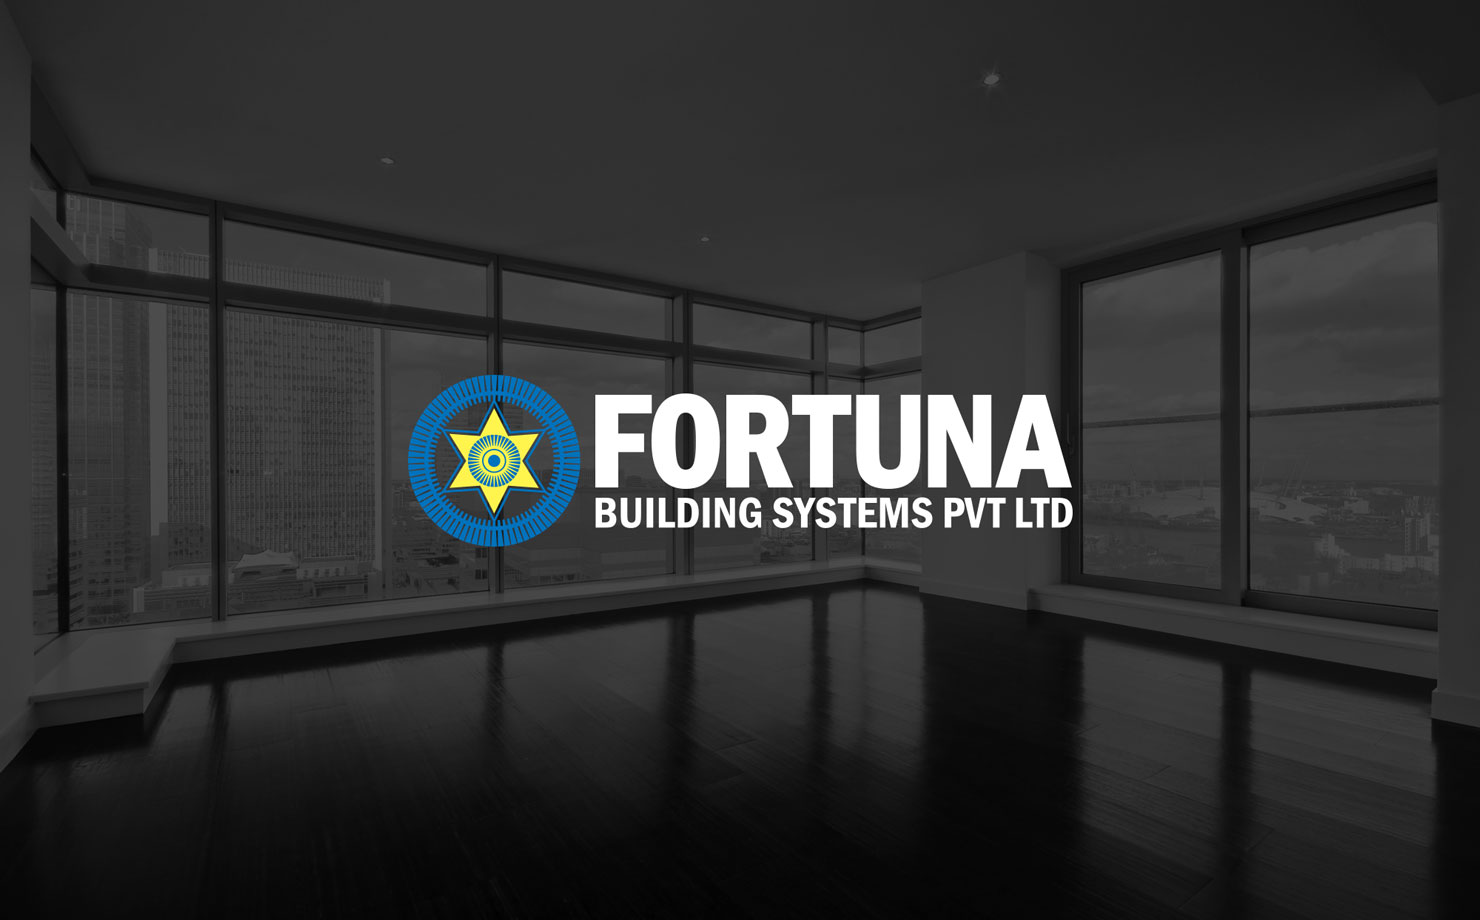 logo-design-fortuna1